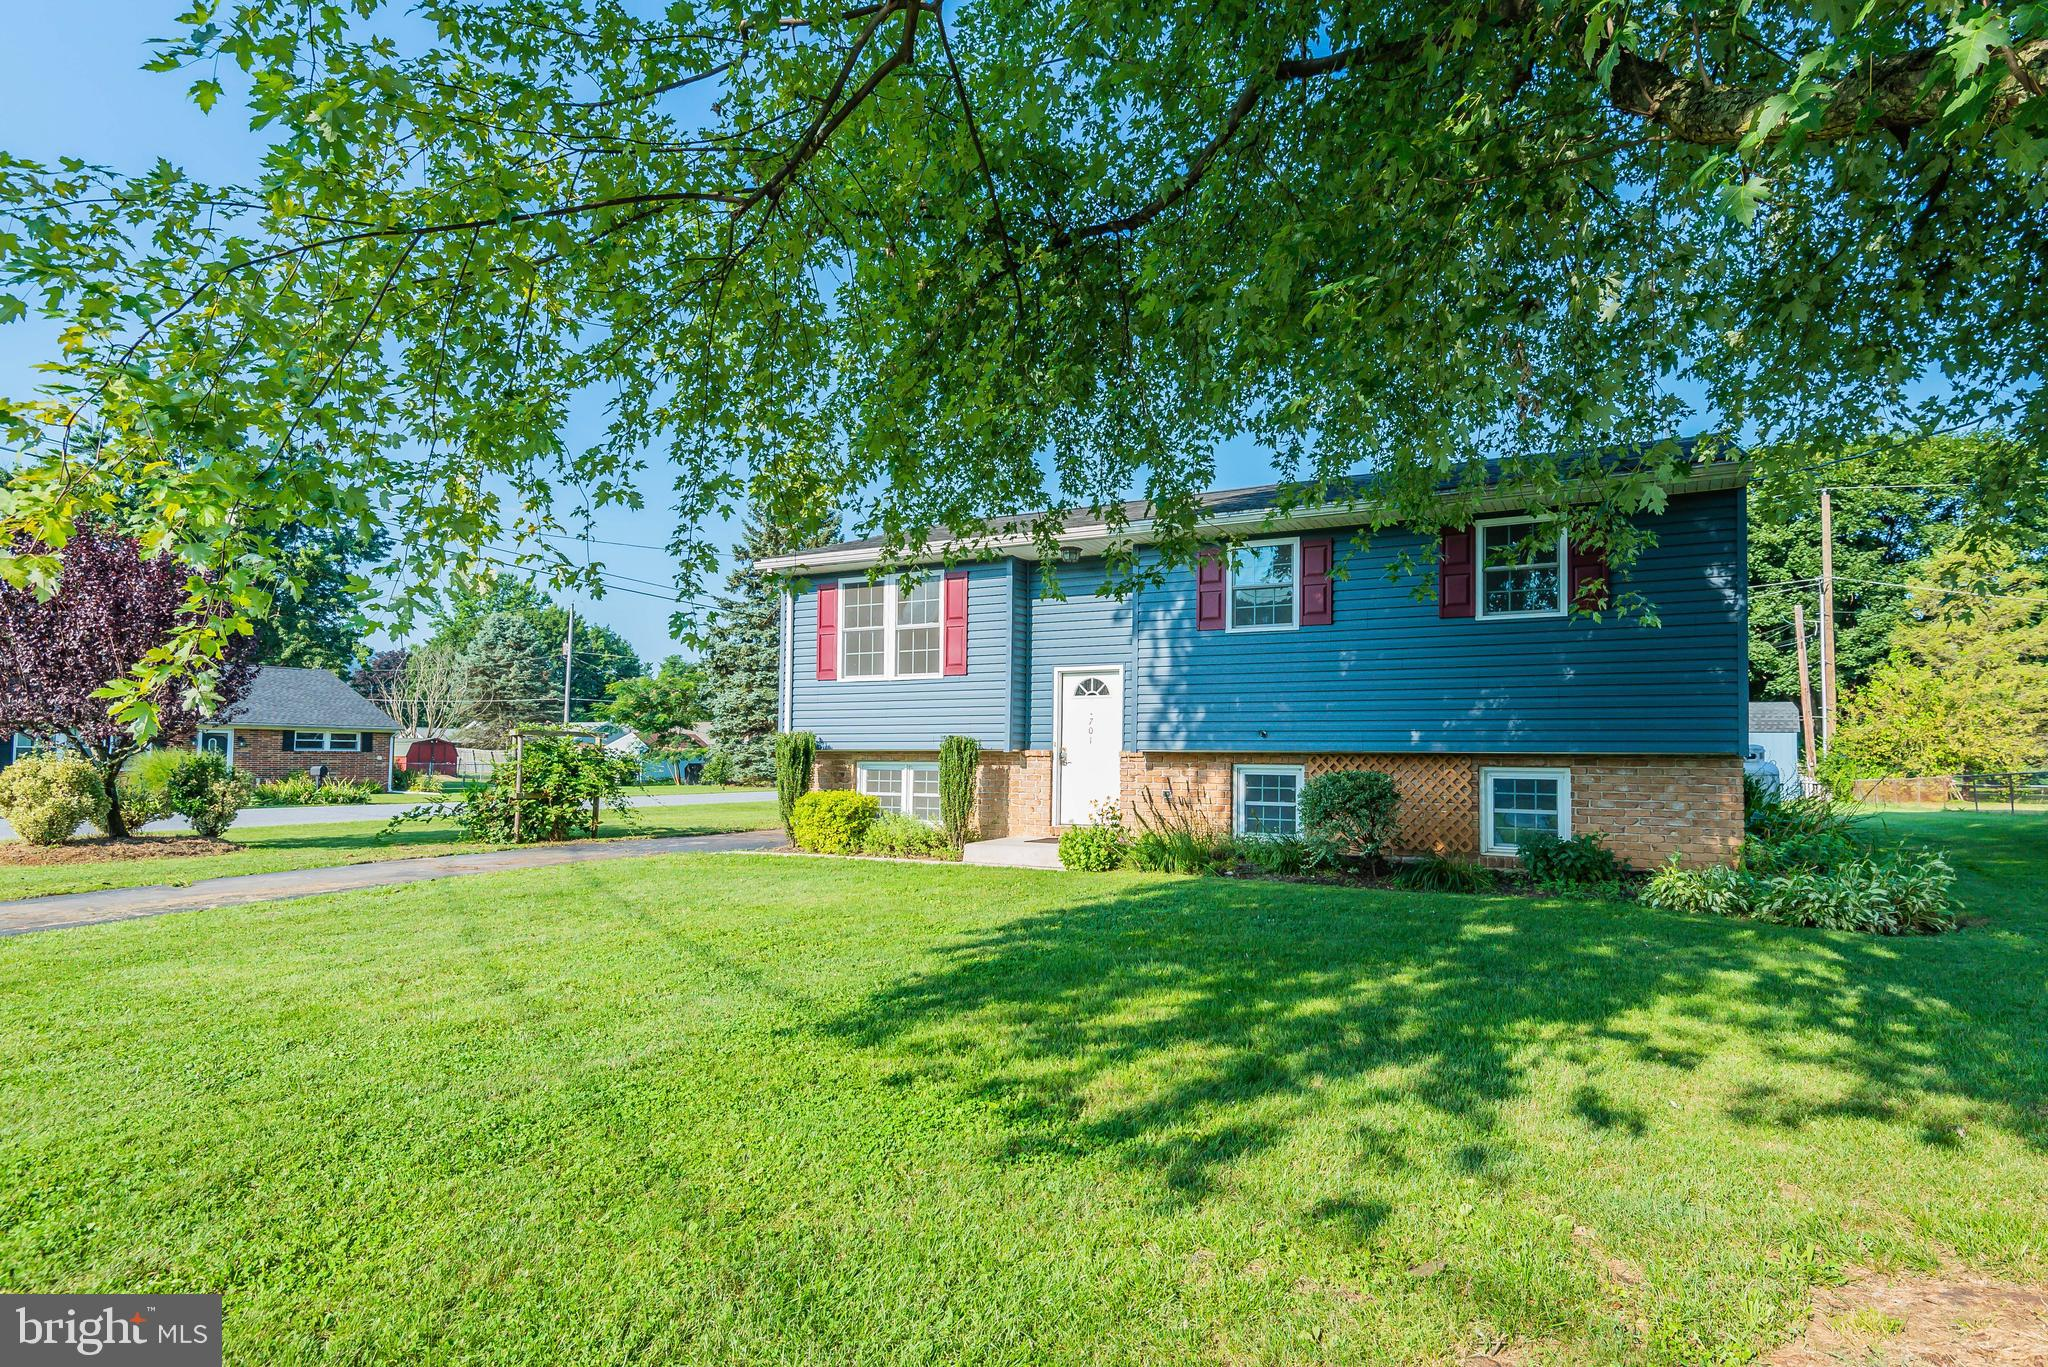 701 HIGHLAND AVE, MOUNT HOLLY SPRINGS, PA 17065